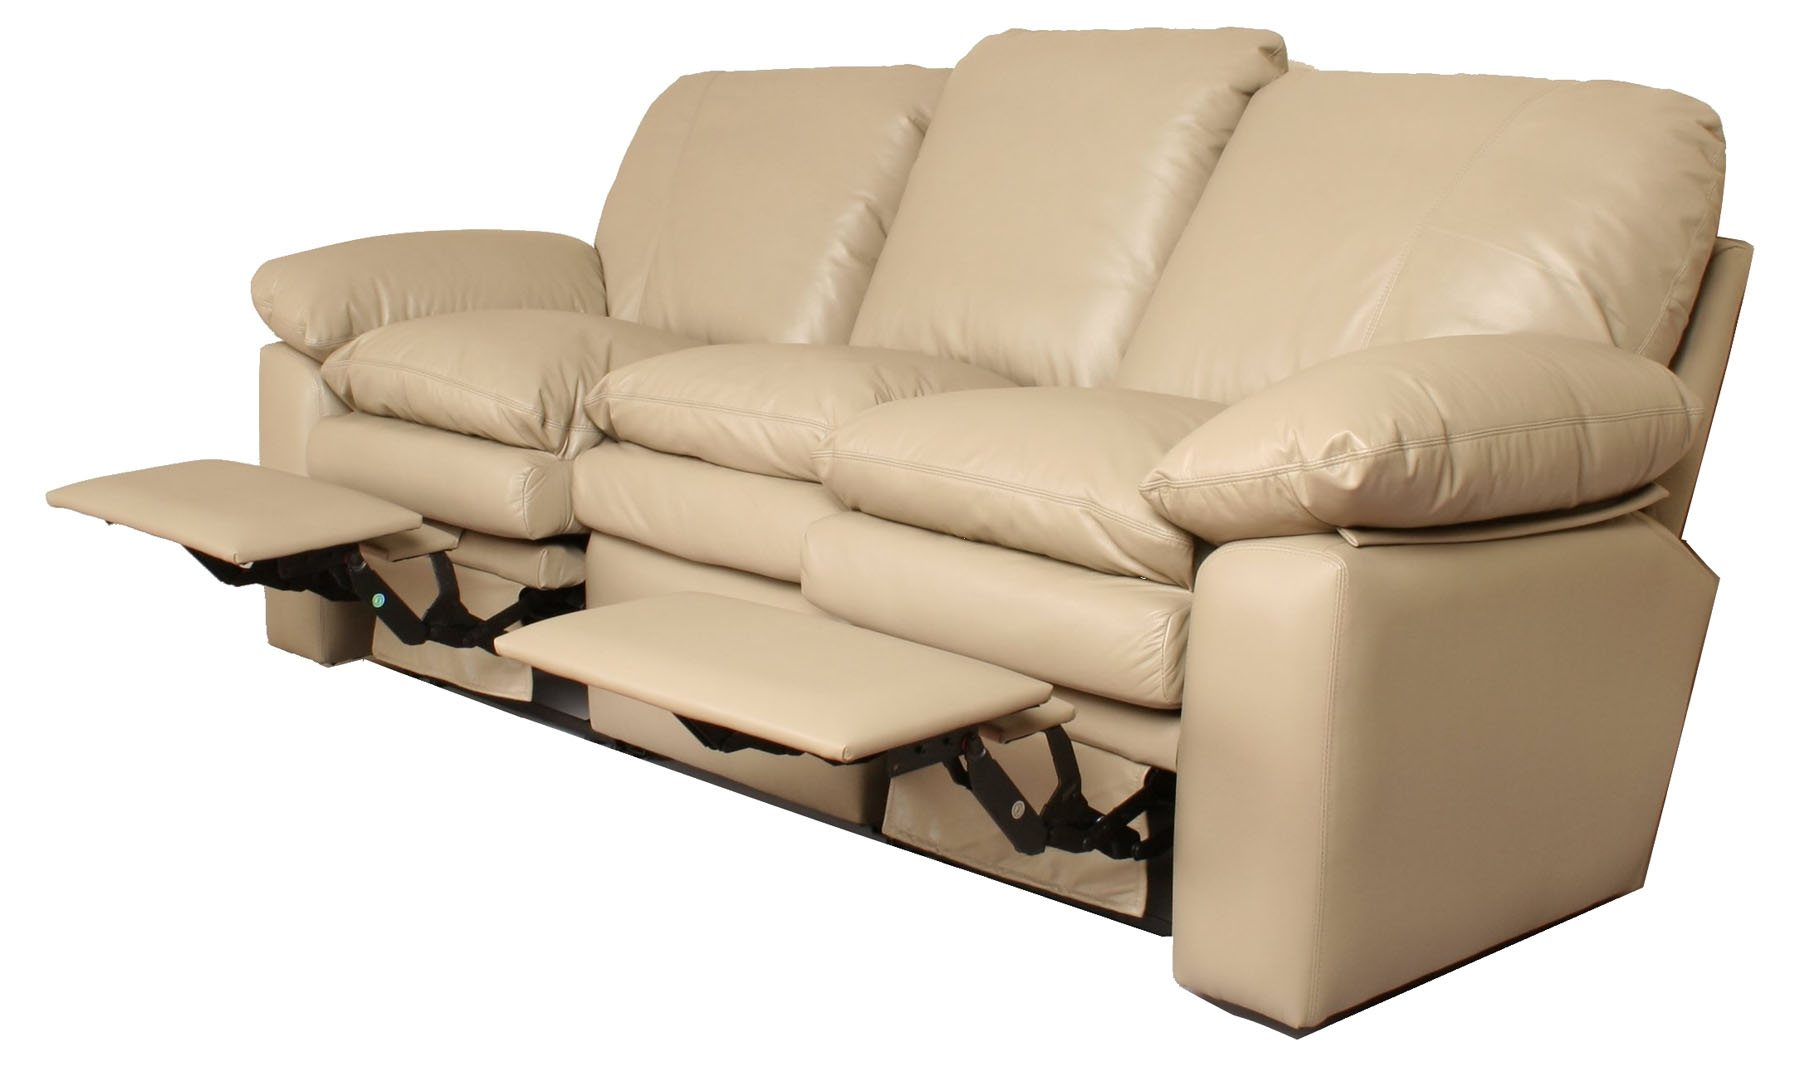 Carrera reclining leather sofa Reclining leather sofa and loveseat